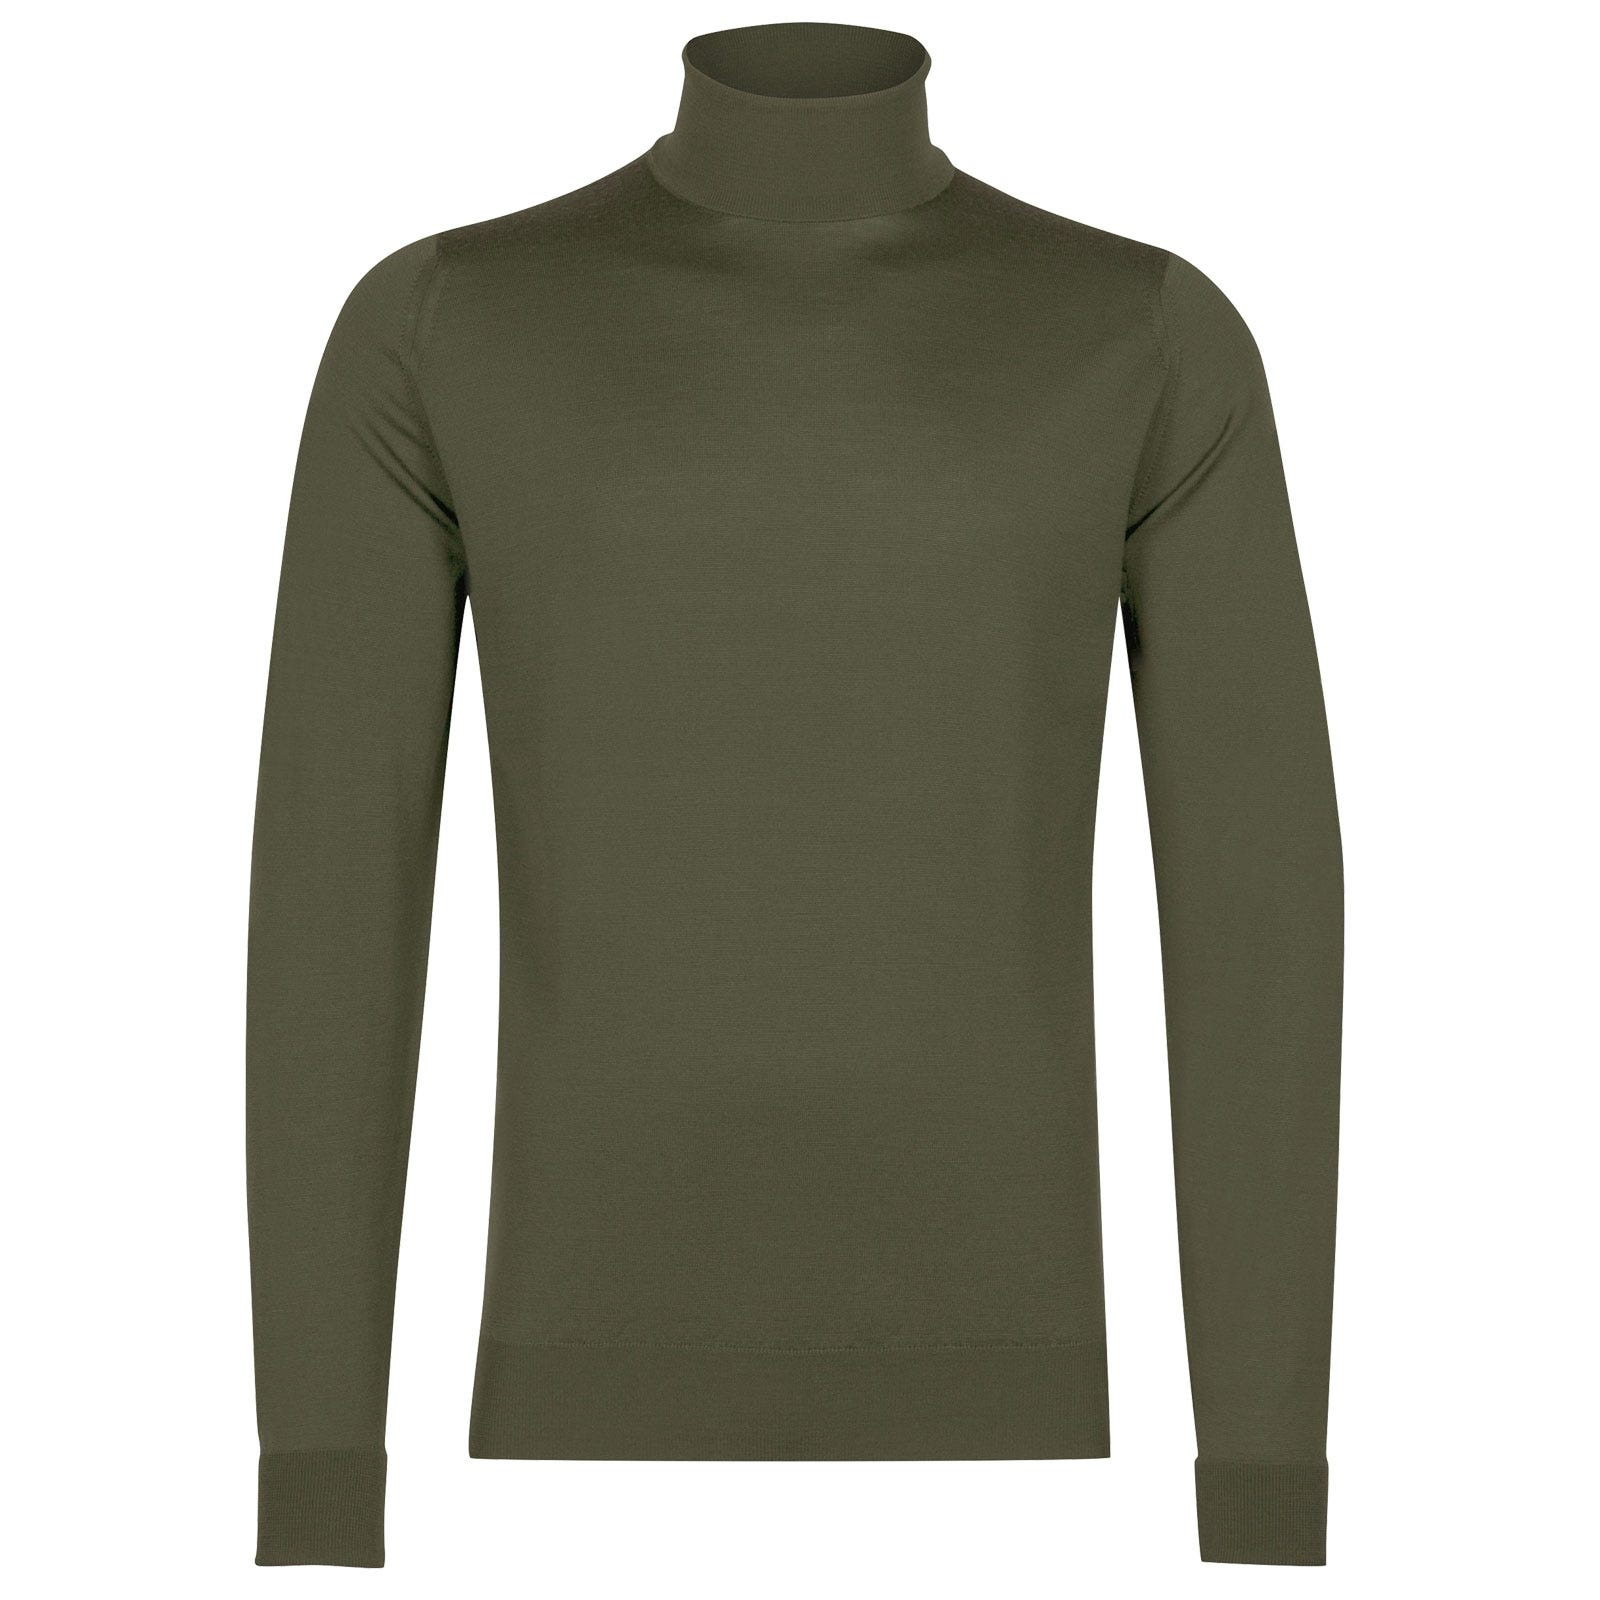 John Smedley Richards in Sepal Green Pullover-SML